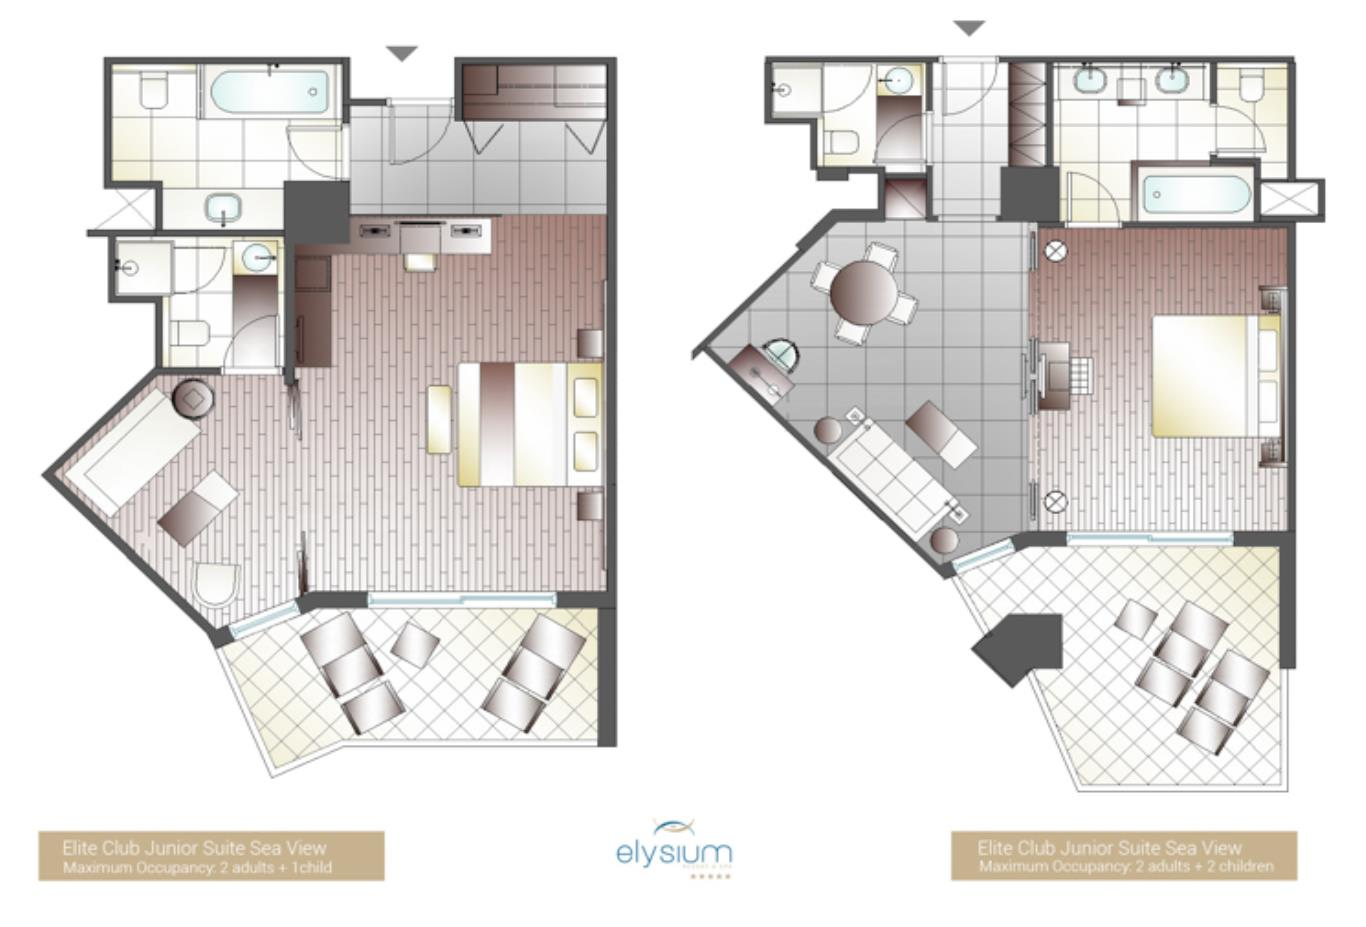 Elite Club Junior Suite Sea View floorplan